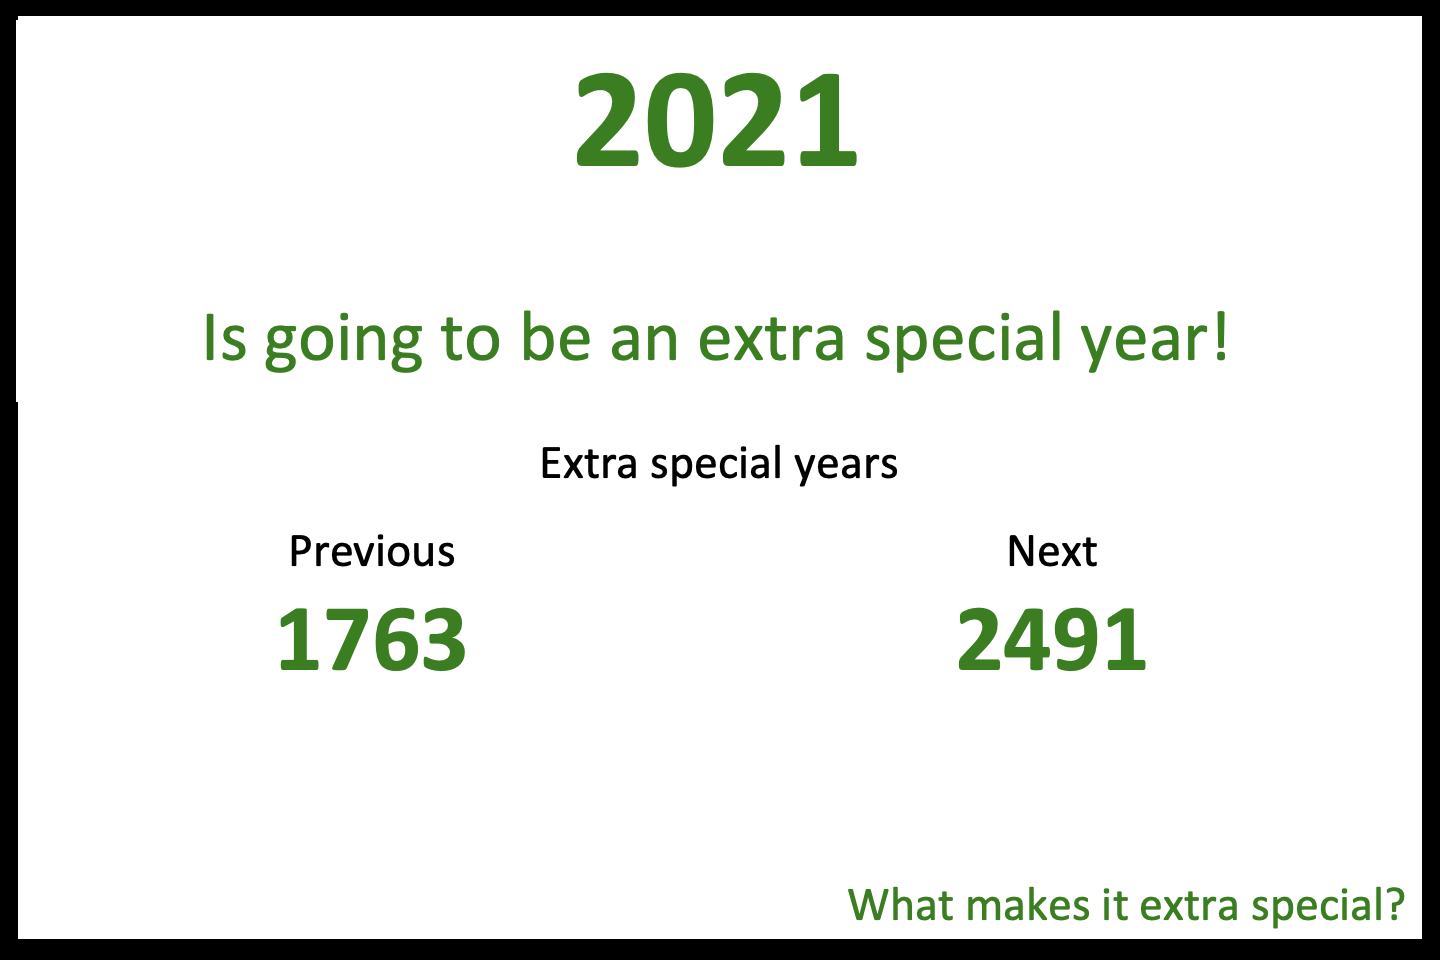 2021 is an Extra Special Year